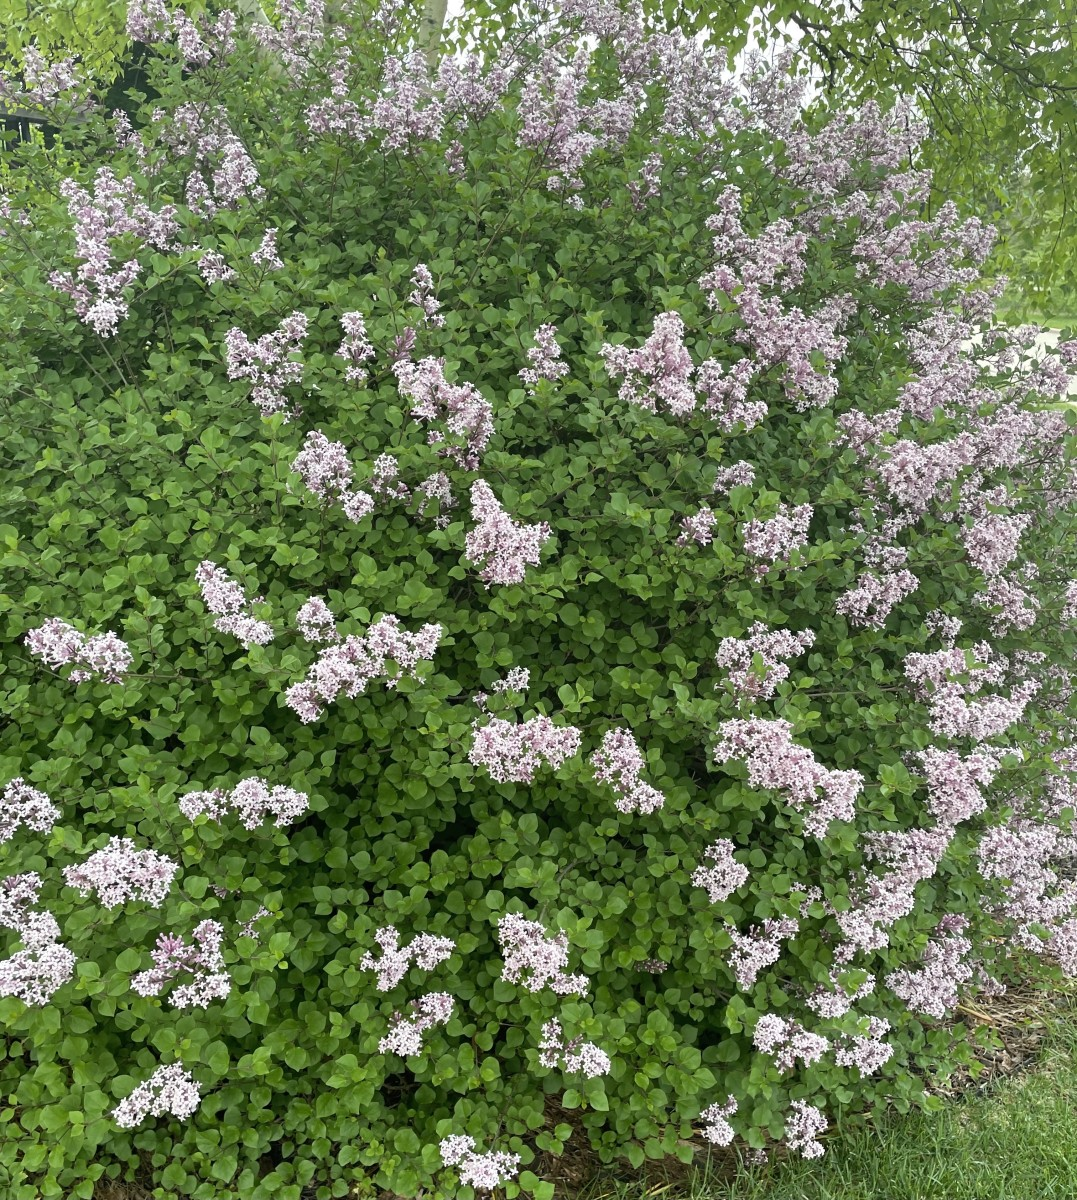 Lilacs were brought to the Americas from Asia and Europe in the 1700s, and they have become a mainstay of many American gardens since.